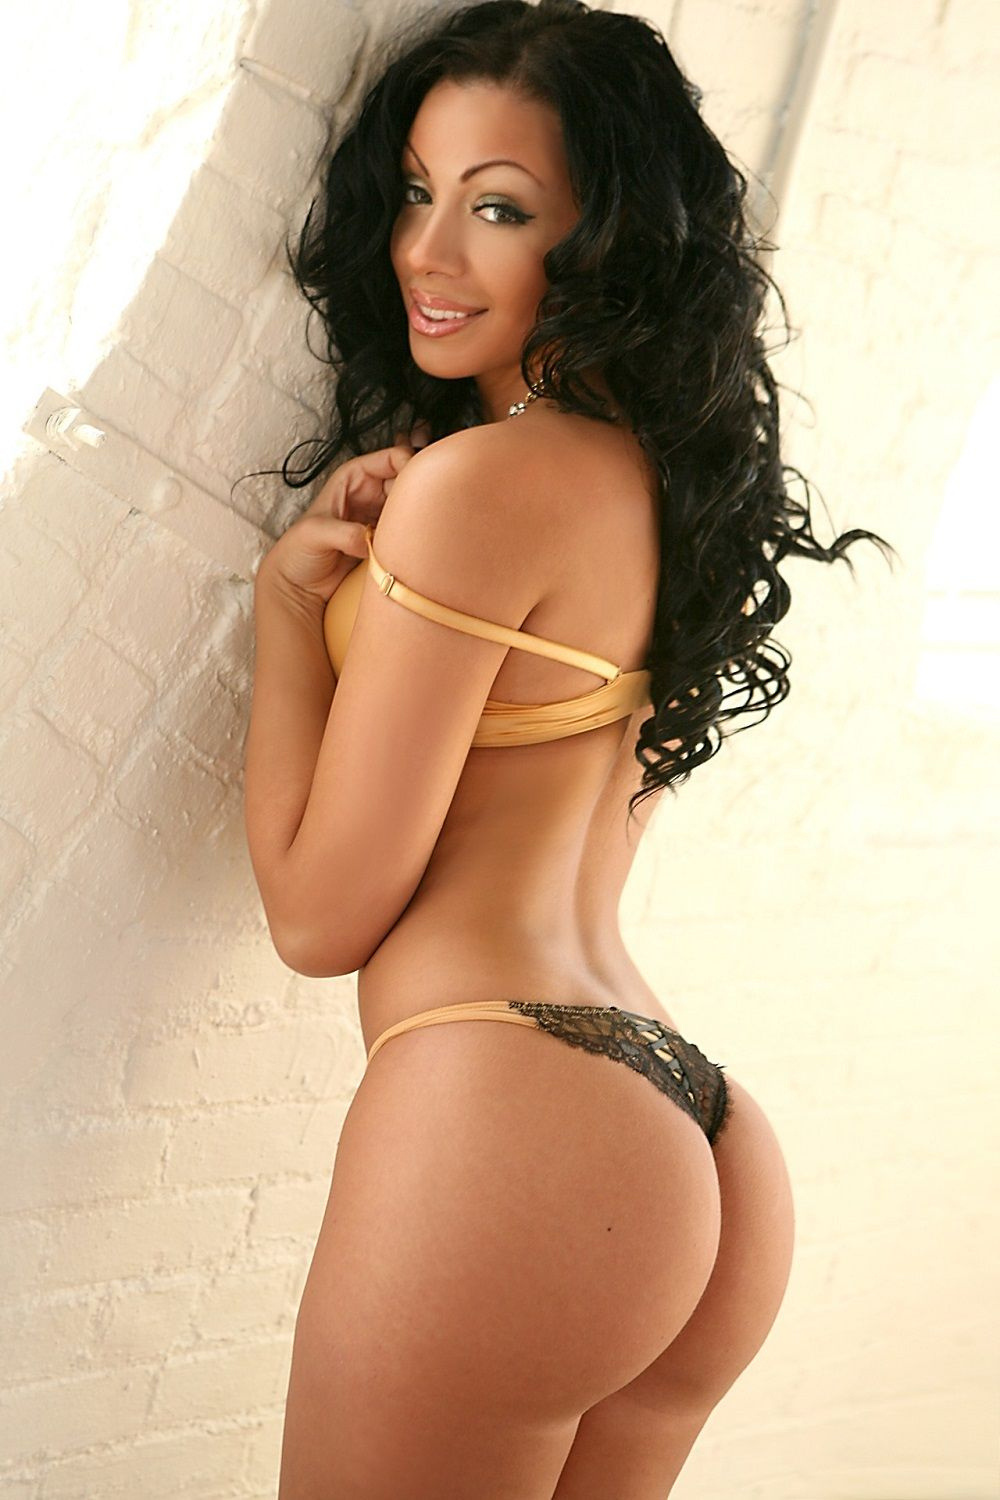 janet lissette sexy ebony girl | hot an breathtaking | pinterest